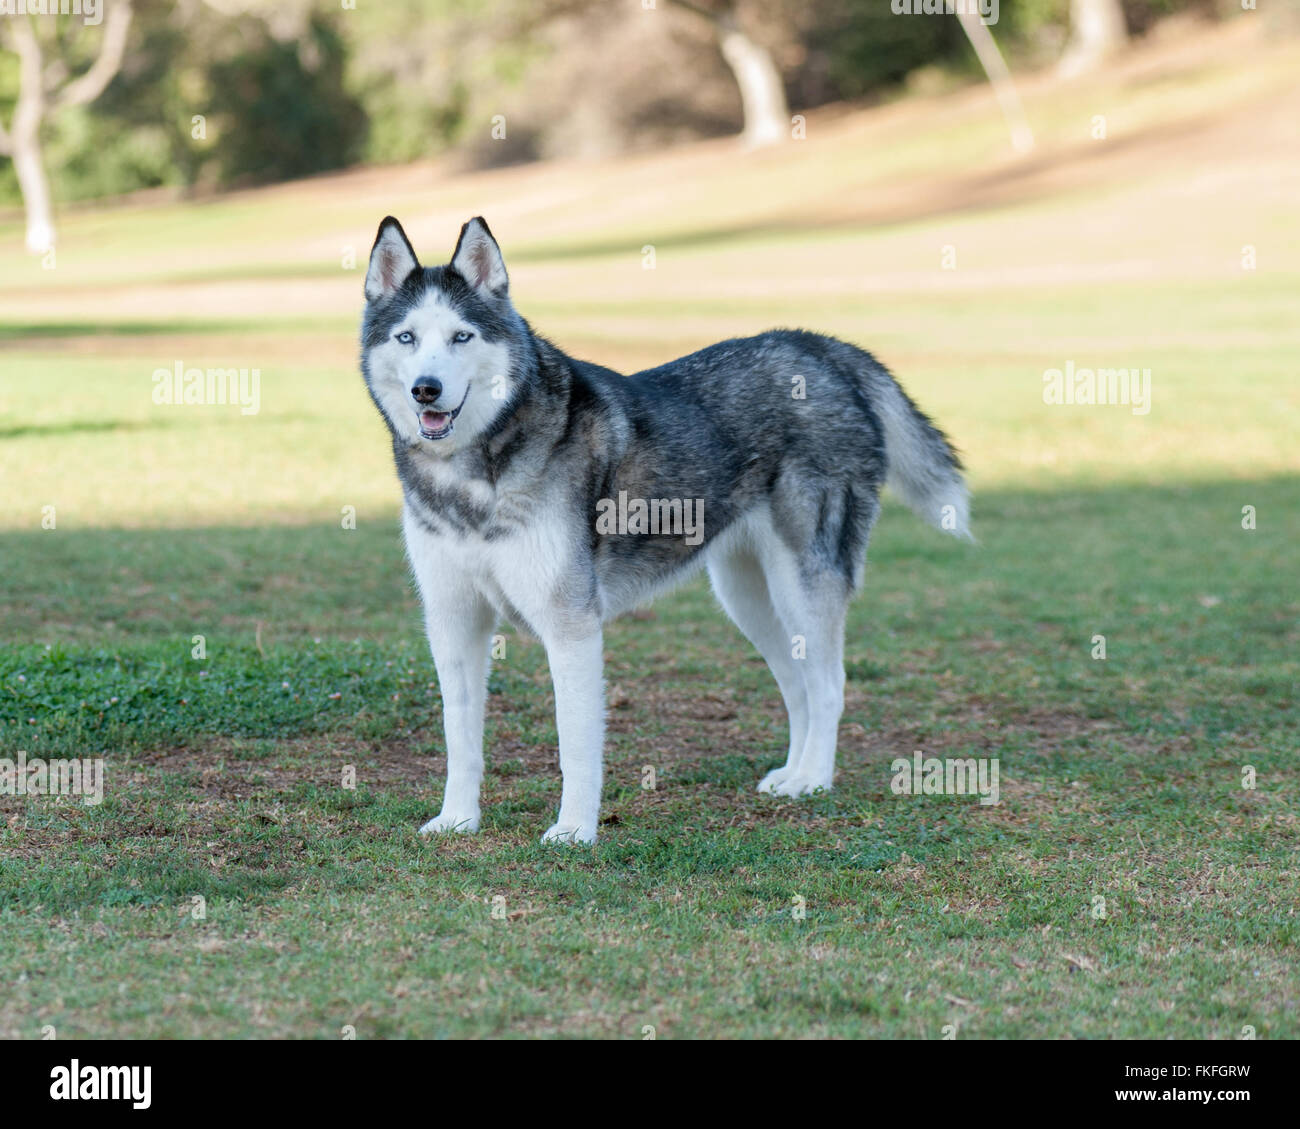 Black And White Husky High Resolution Stock Photography And Images Alamy